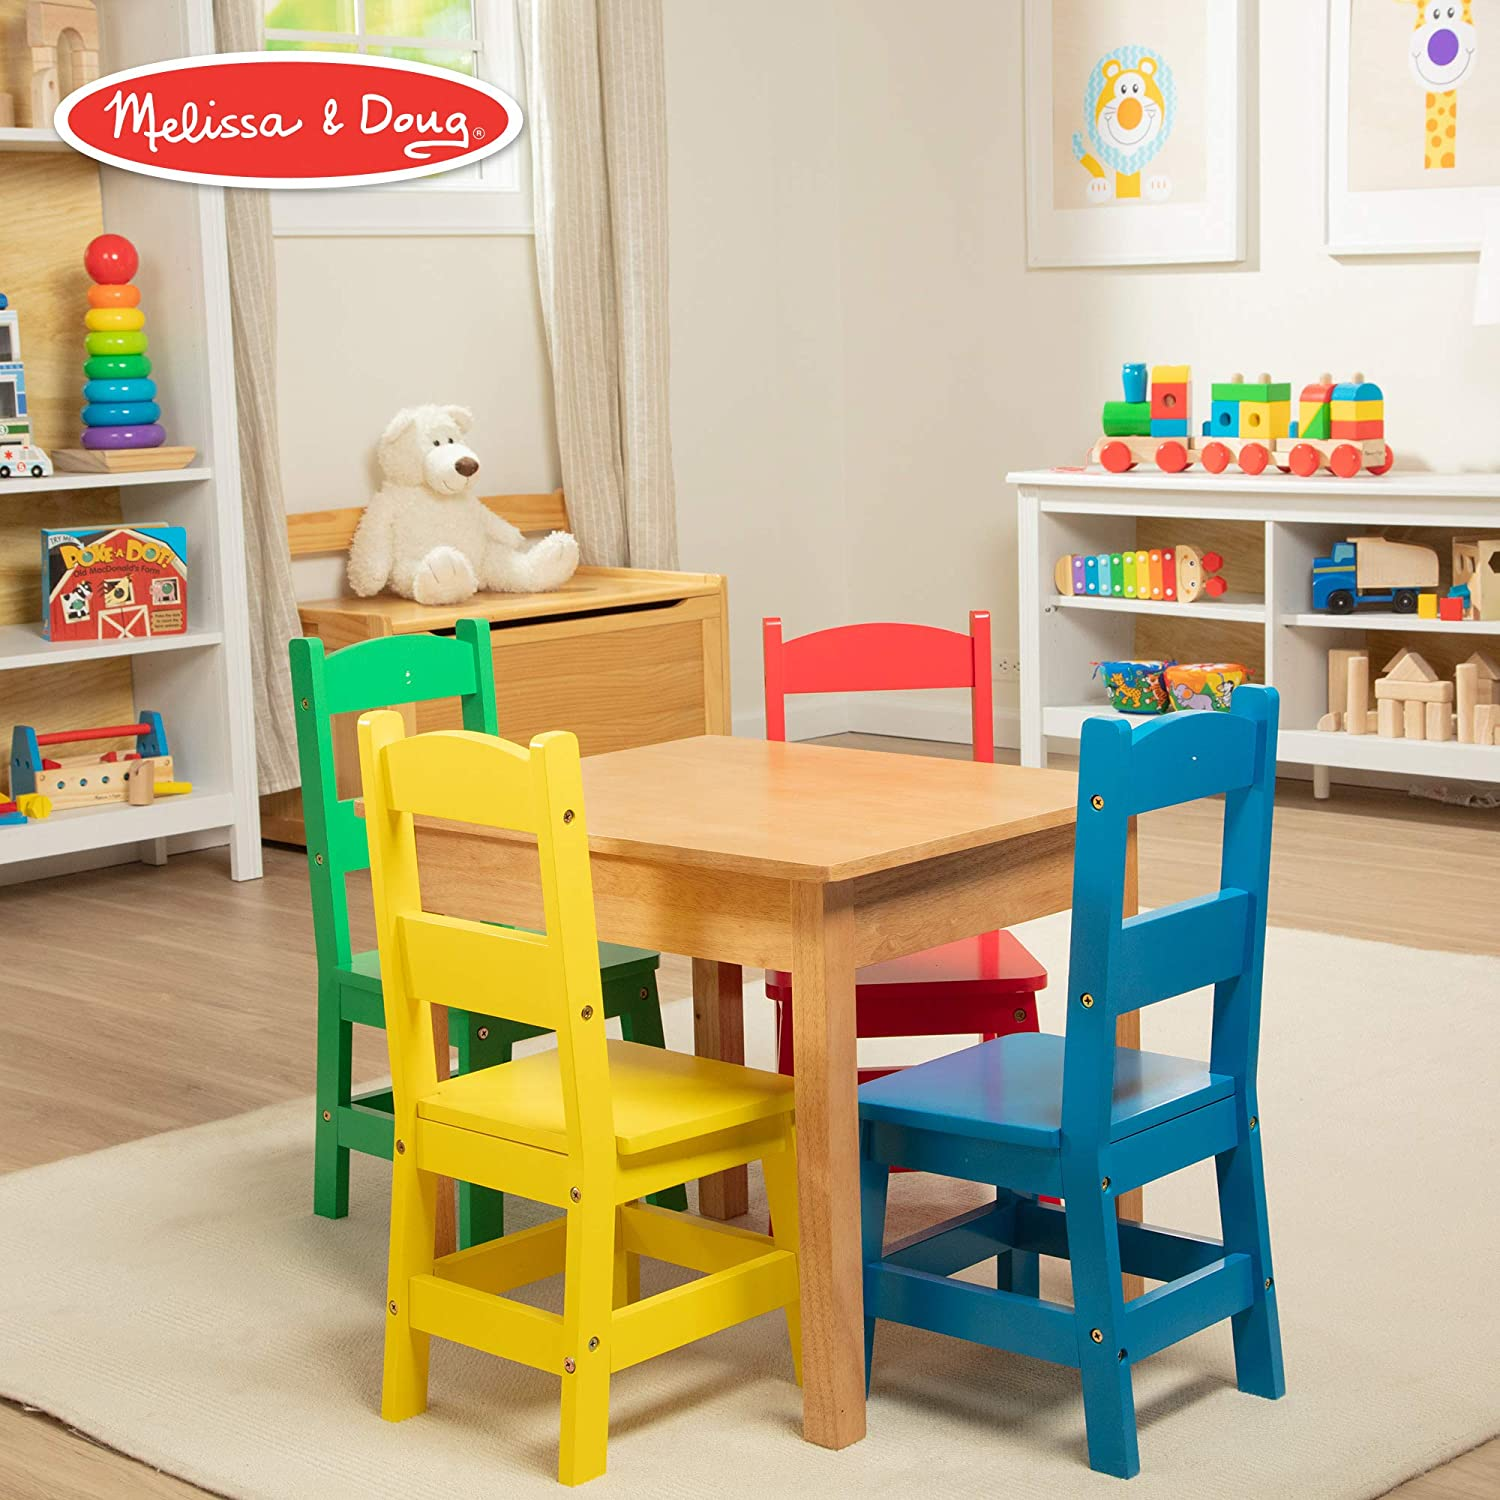 Melissa & Doug Kids Furniture Wooden Table & 4 Chairs - Primary (Natural Table, Yellow, bluee, Red, Green Chairs)